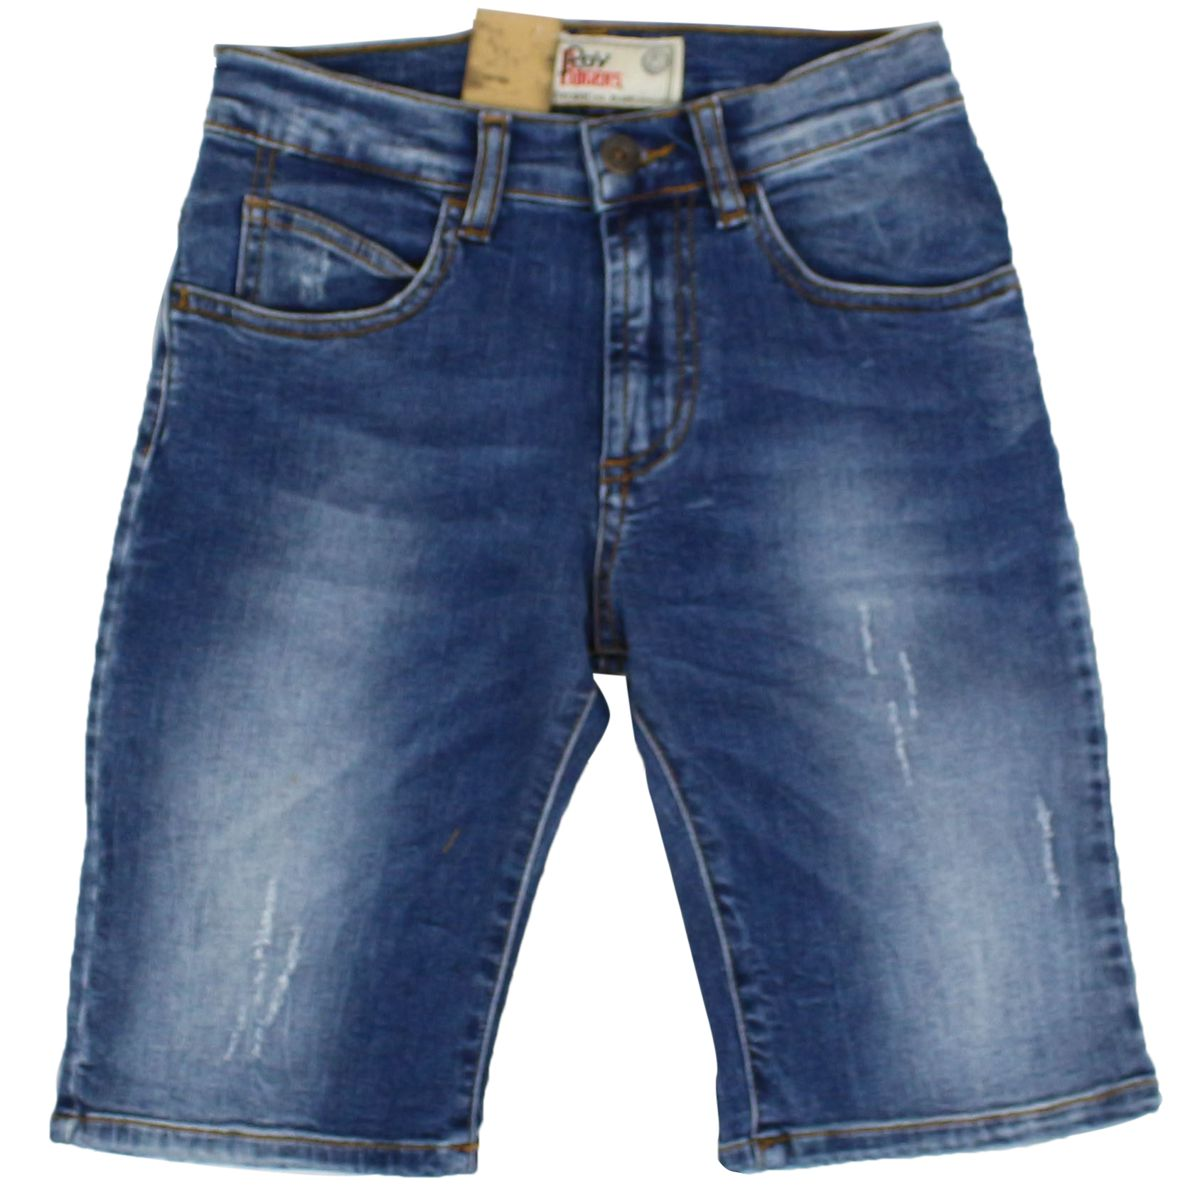 Emanuele Alyon jeans Medium denim Roy Roger's